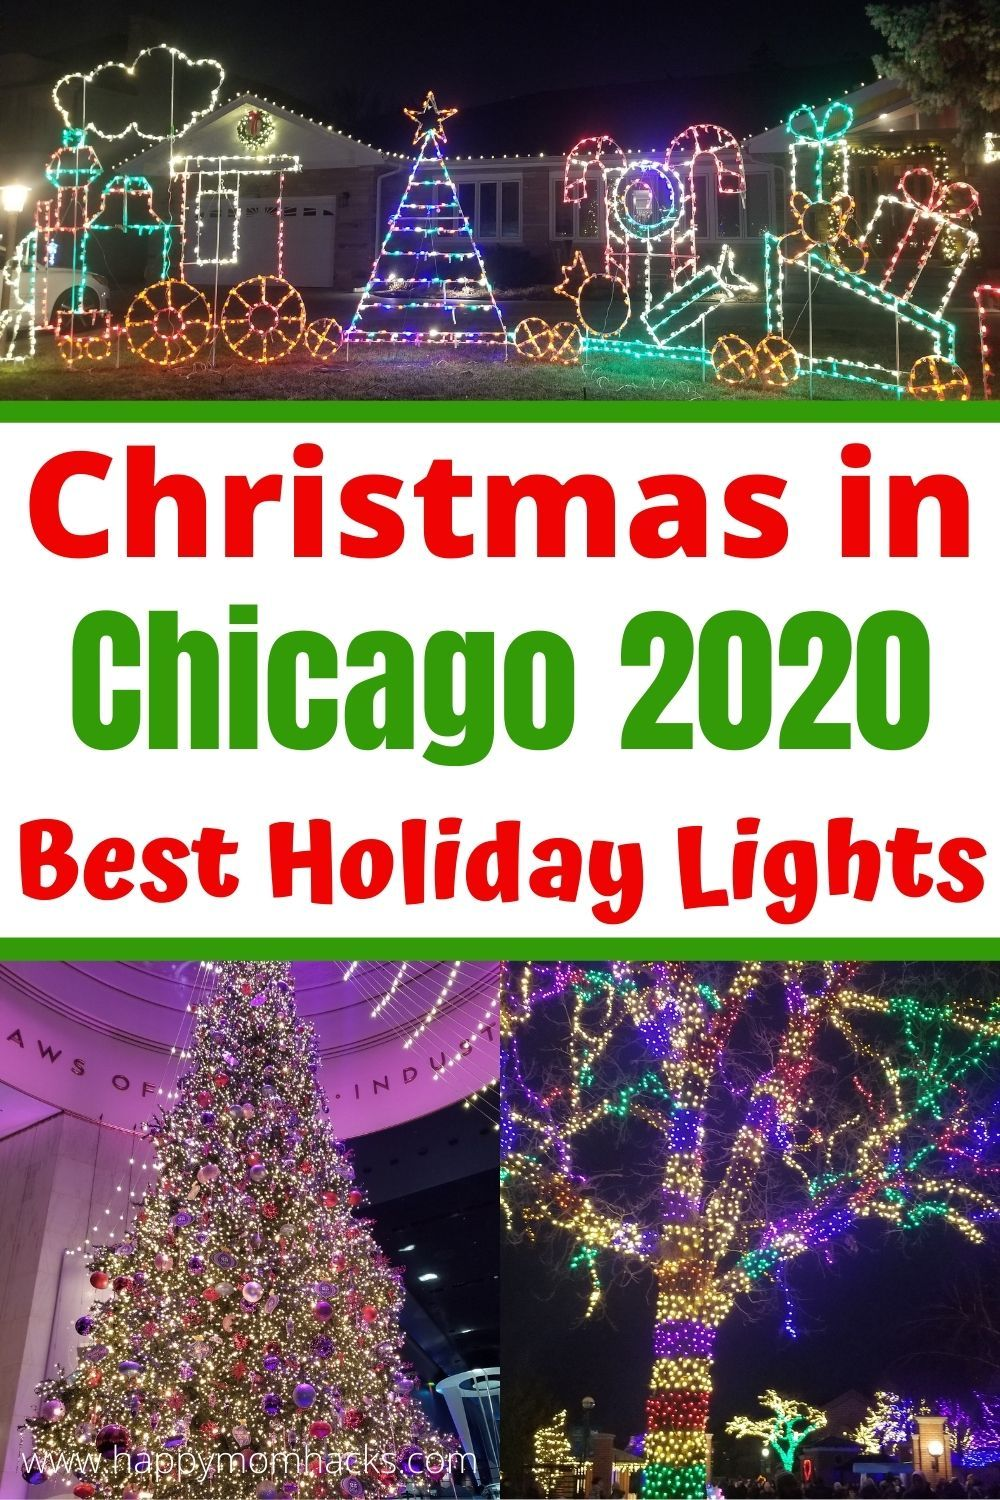 Christmas Vacation Packages 2020 From Chicago Christmas in Chicago 2020   Best Light Displays | Happy Mom Hacks